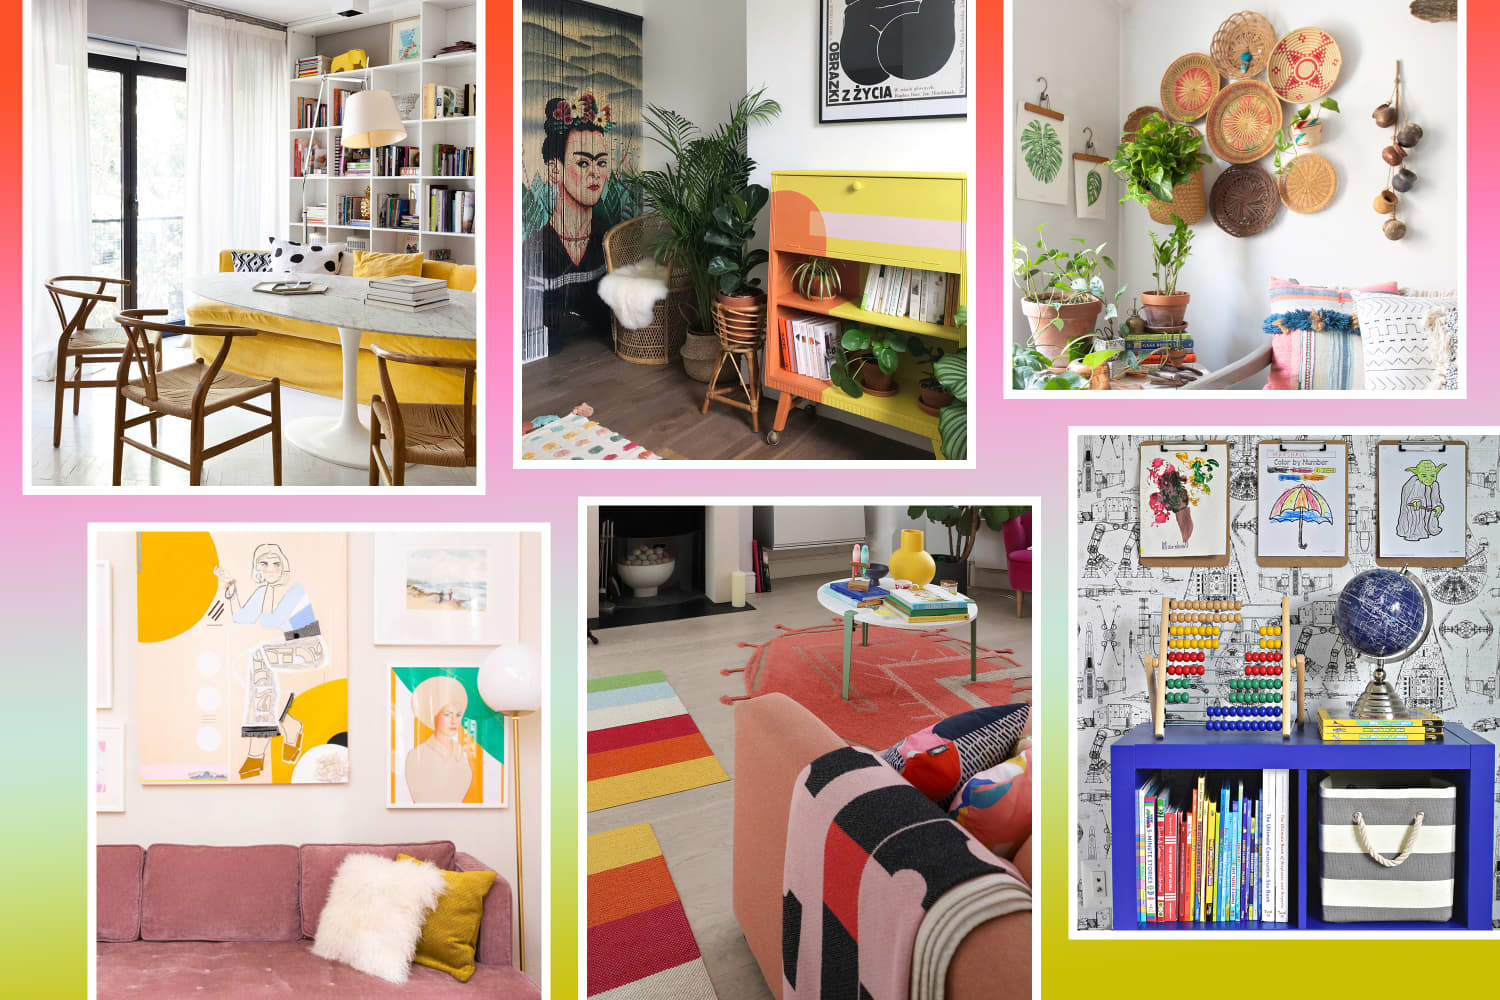 101 Ways to Add Color to Your Home